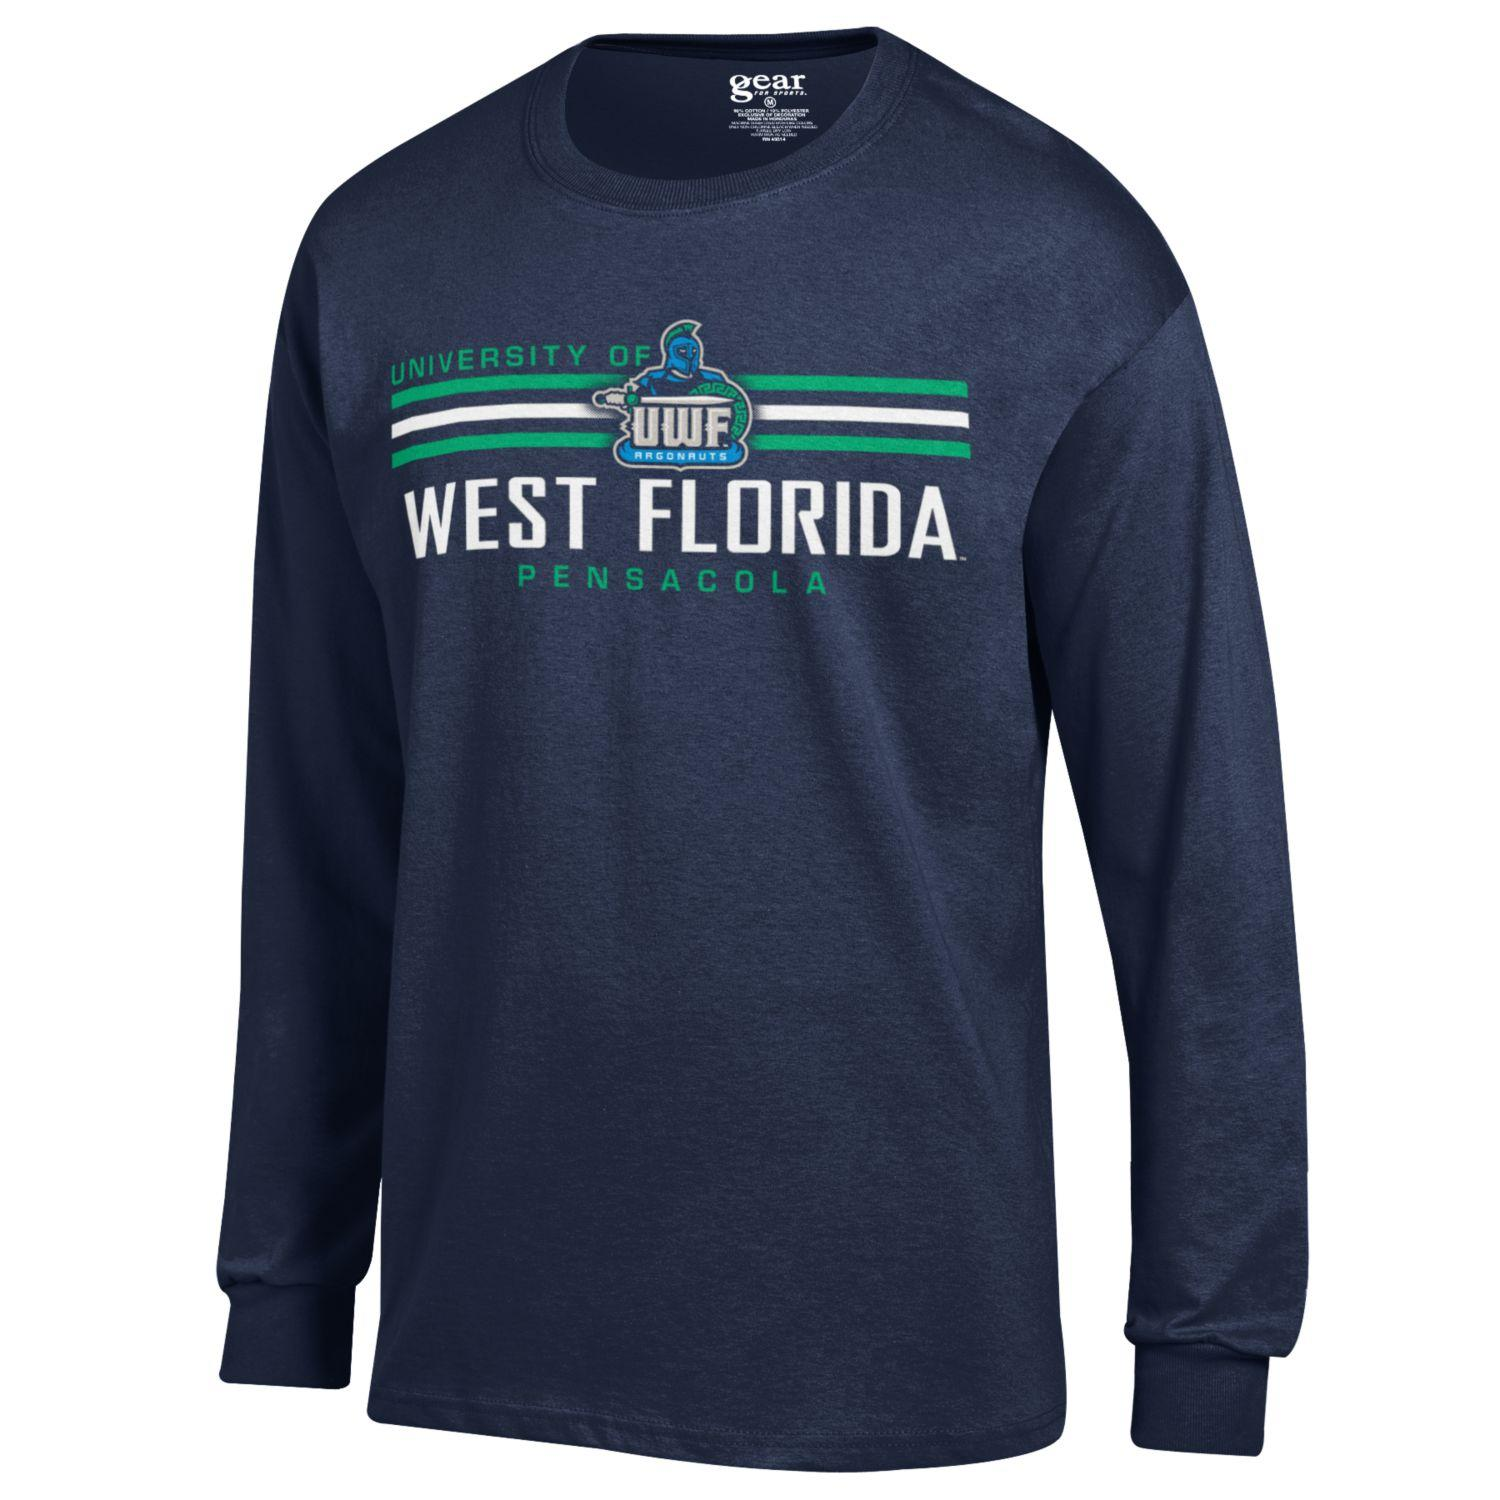 UWF BASIC LONG SLEEVE